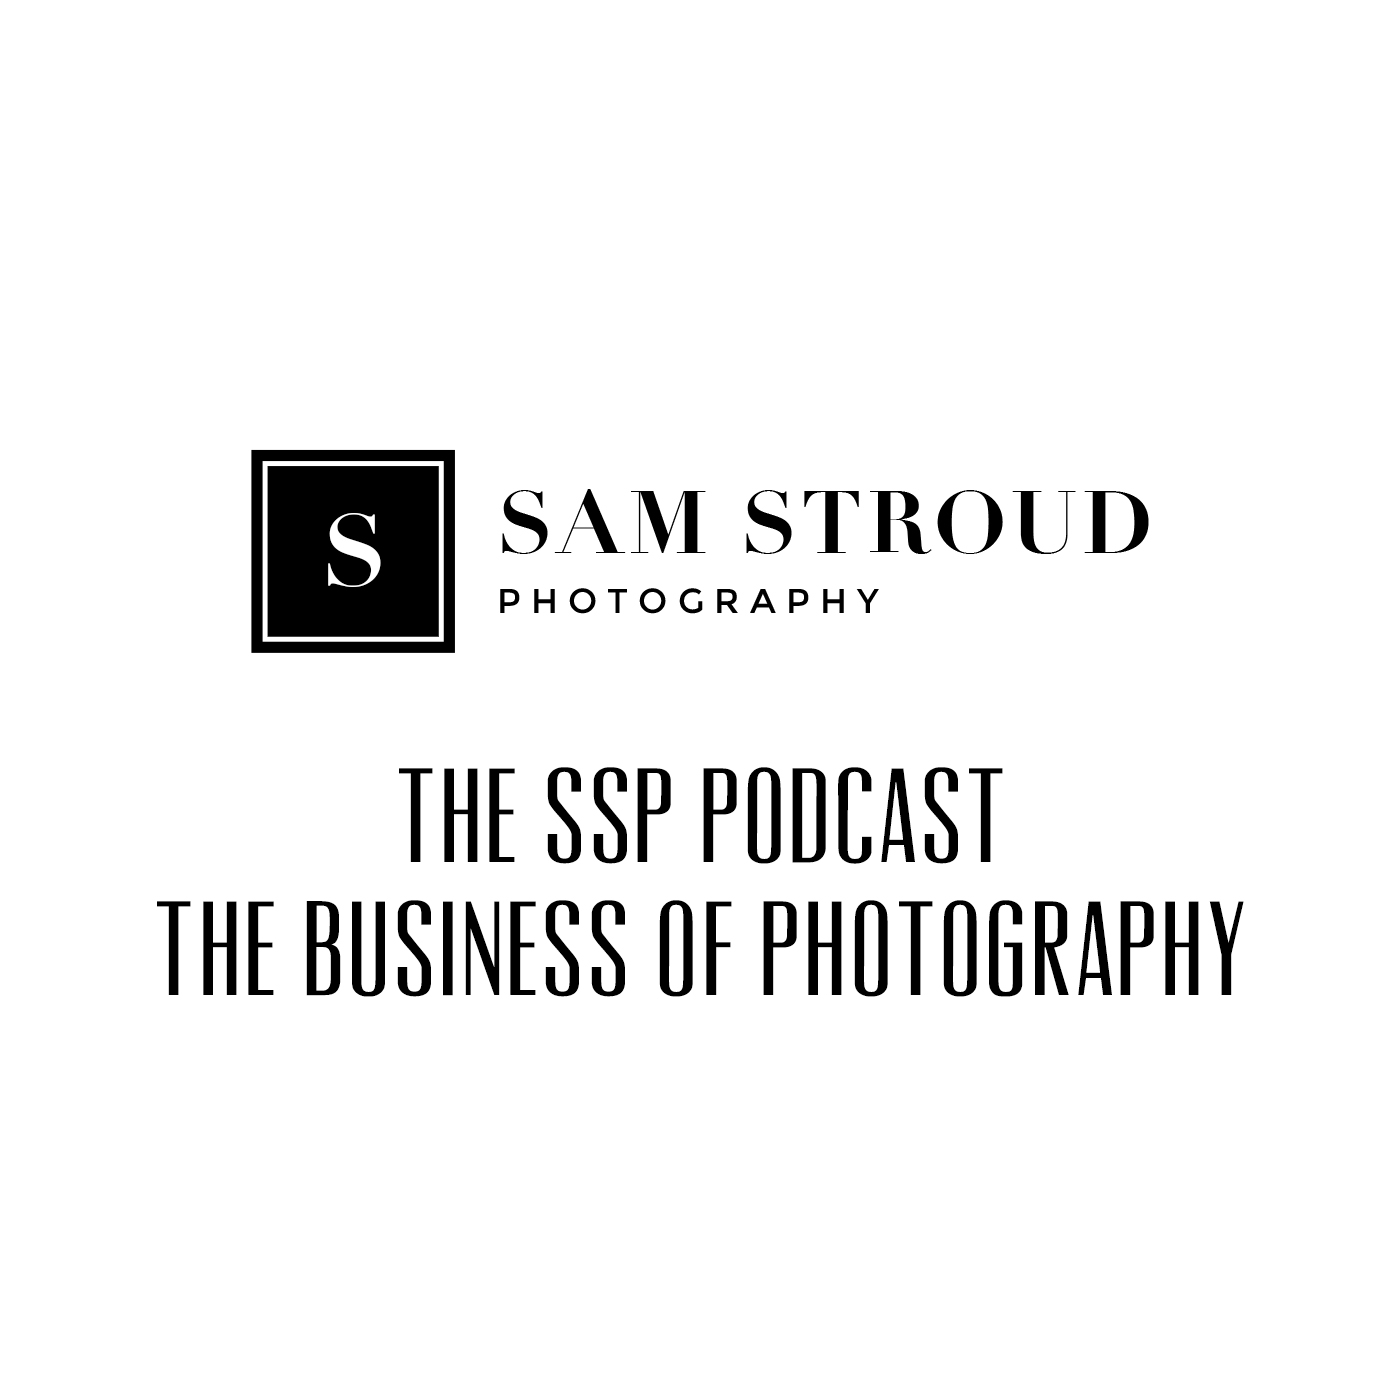 SSP Podcast - Sam Stroud Photography